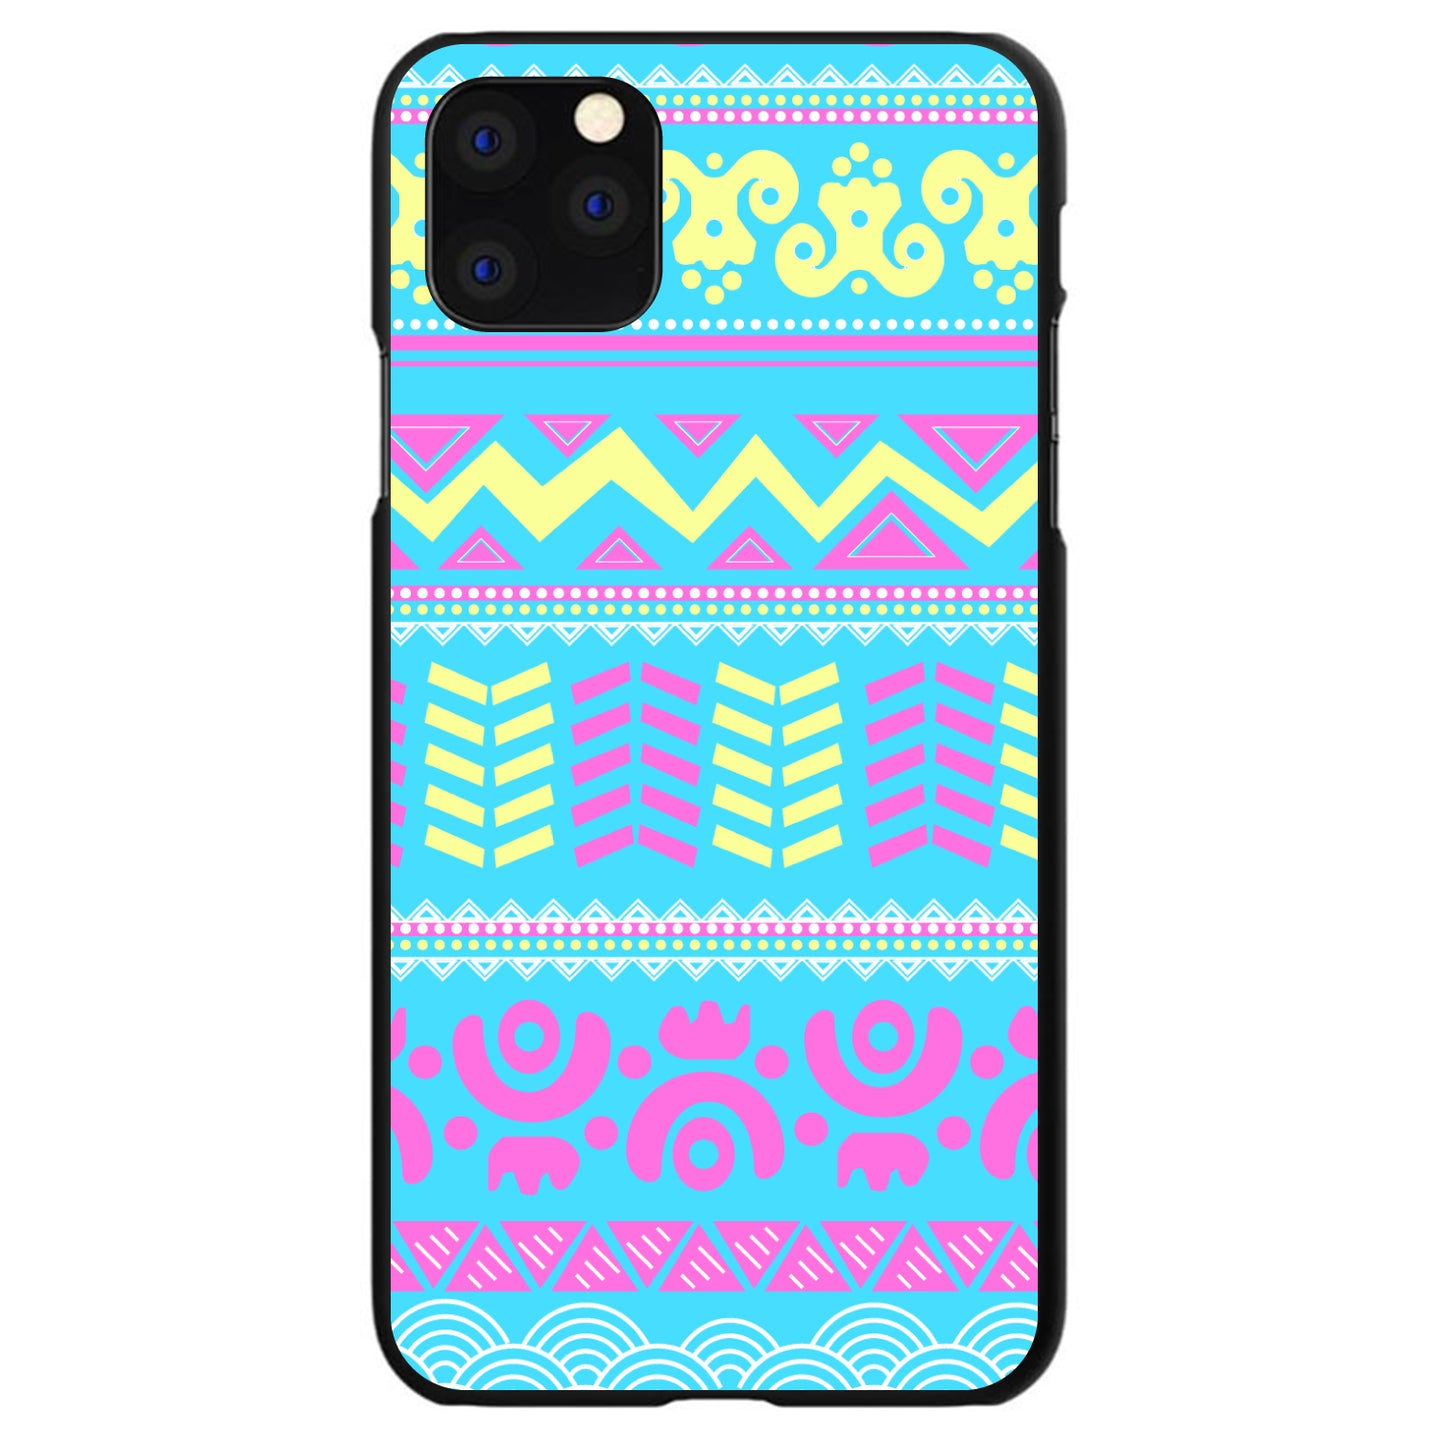 DistinctInk® Hard Plastic Snap-On Case for Apple iPhone - Yellow Pink Blue Aztec Tribal